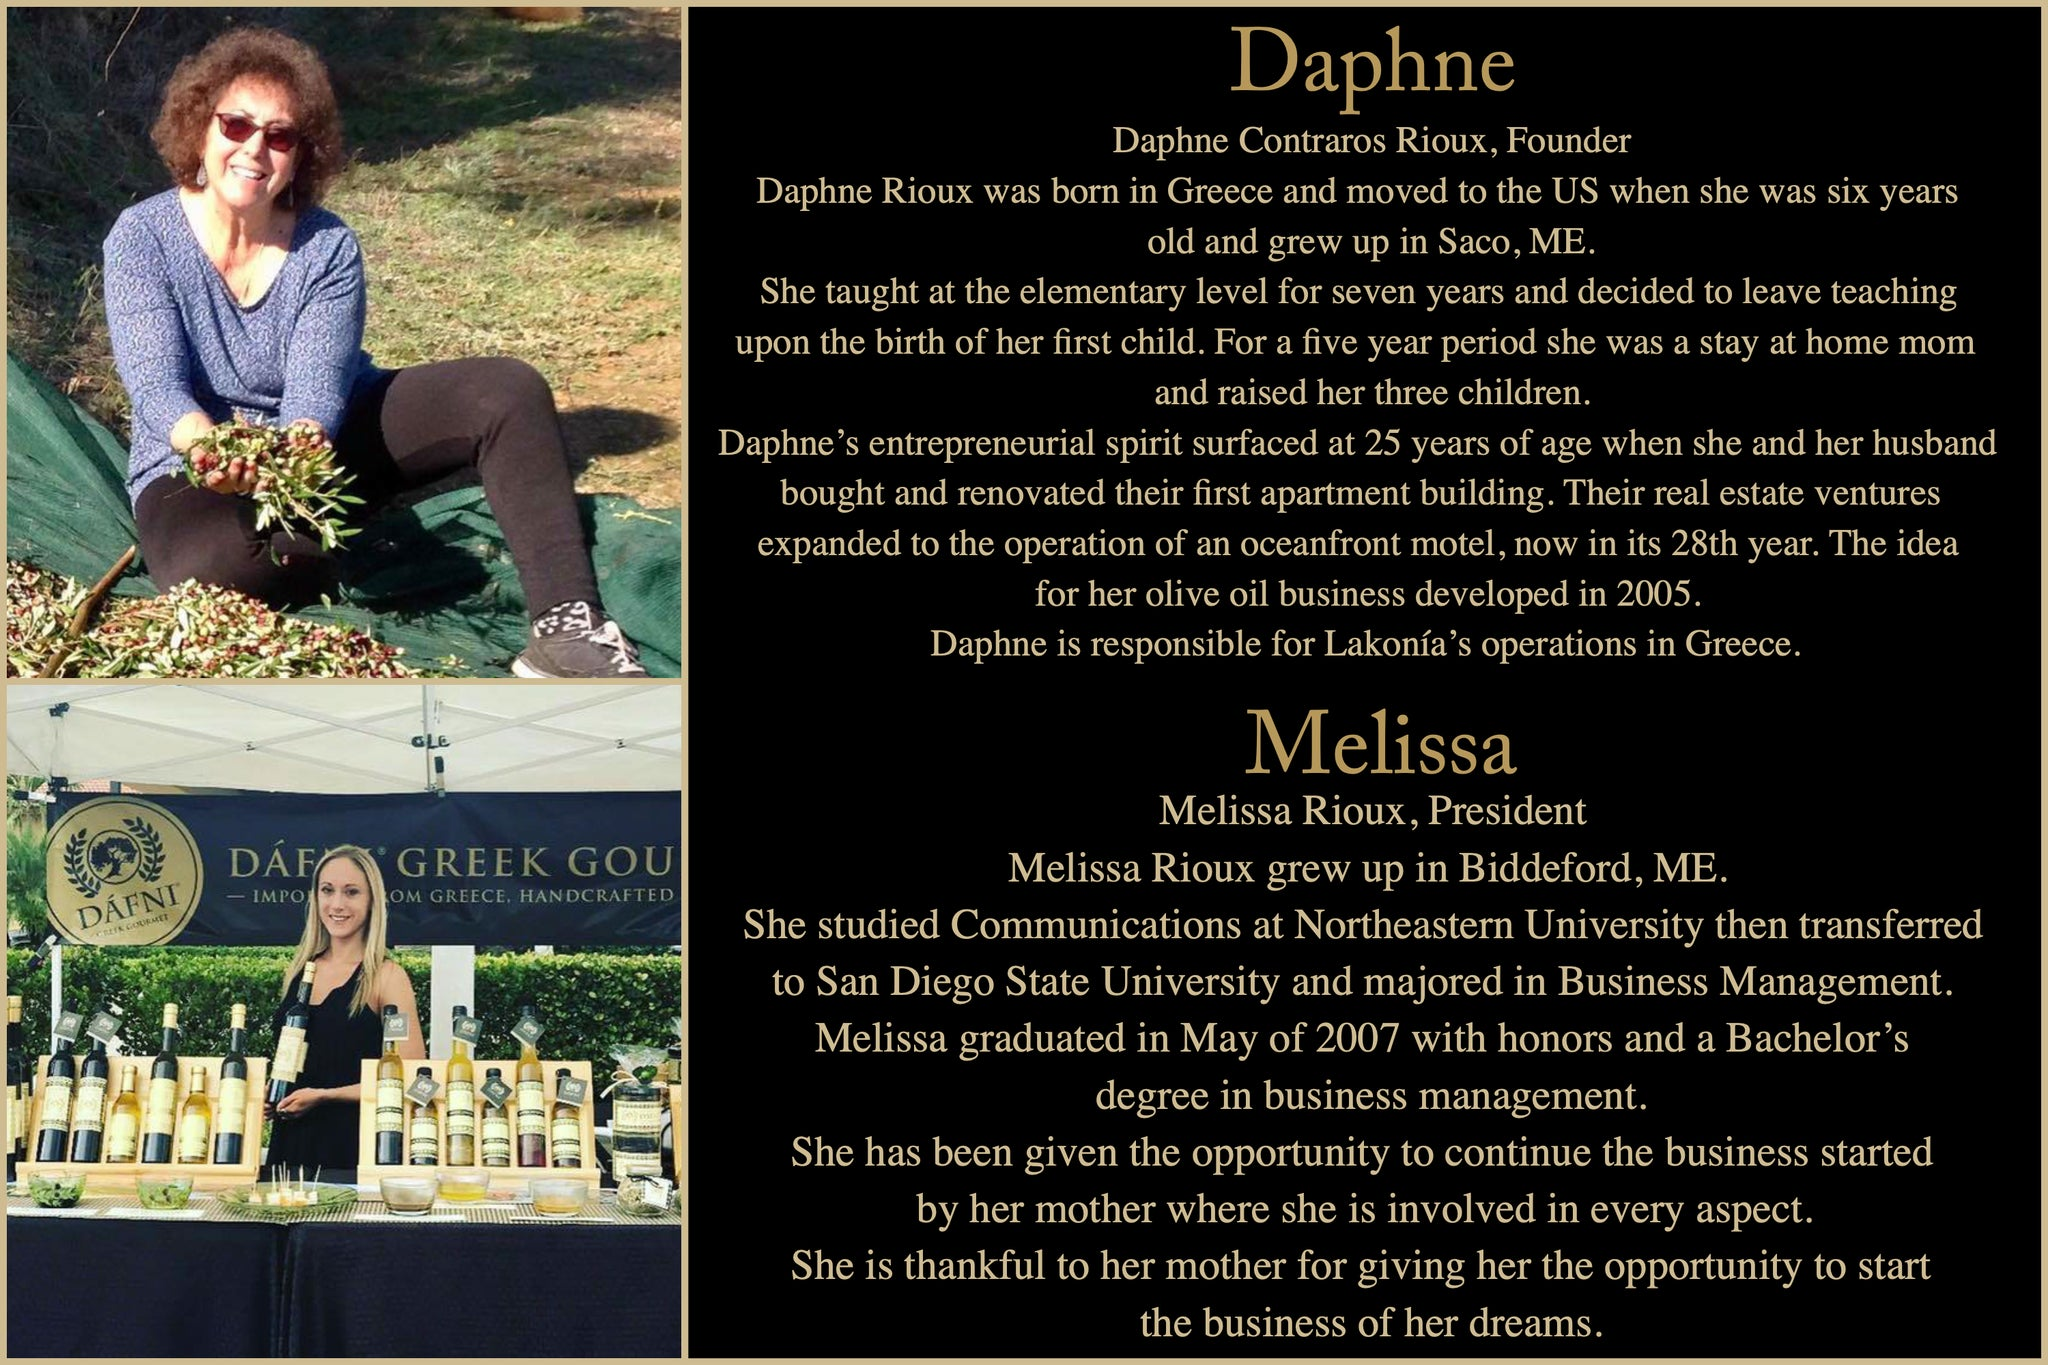 Melissa and Daphne Bio